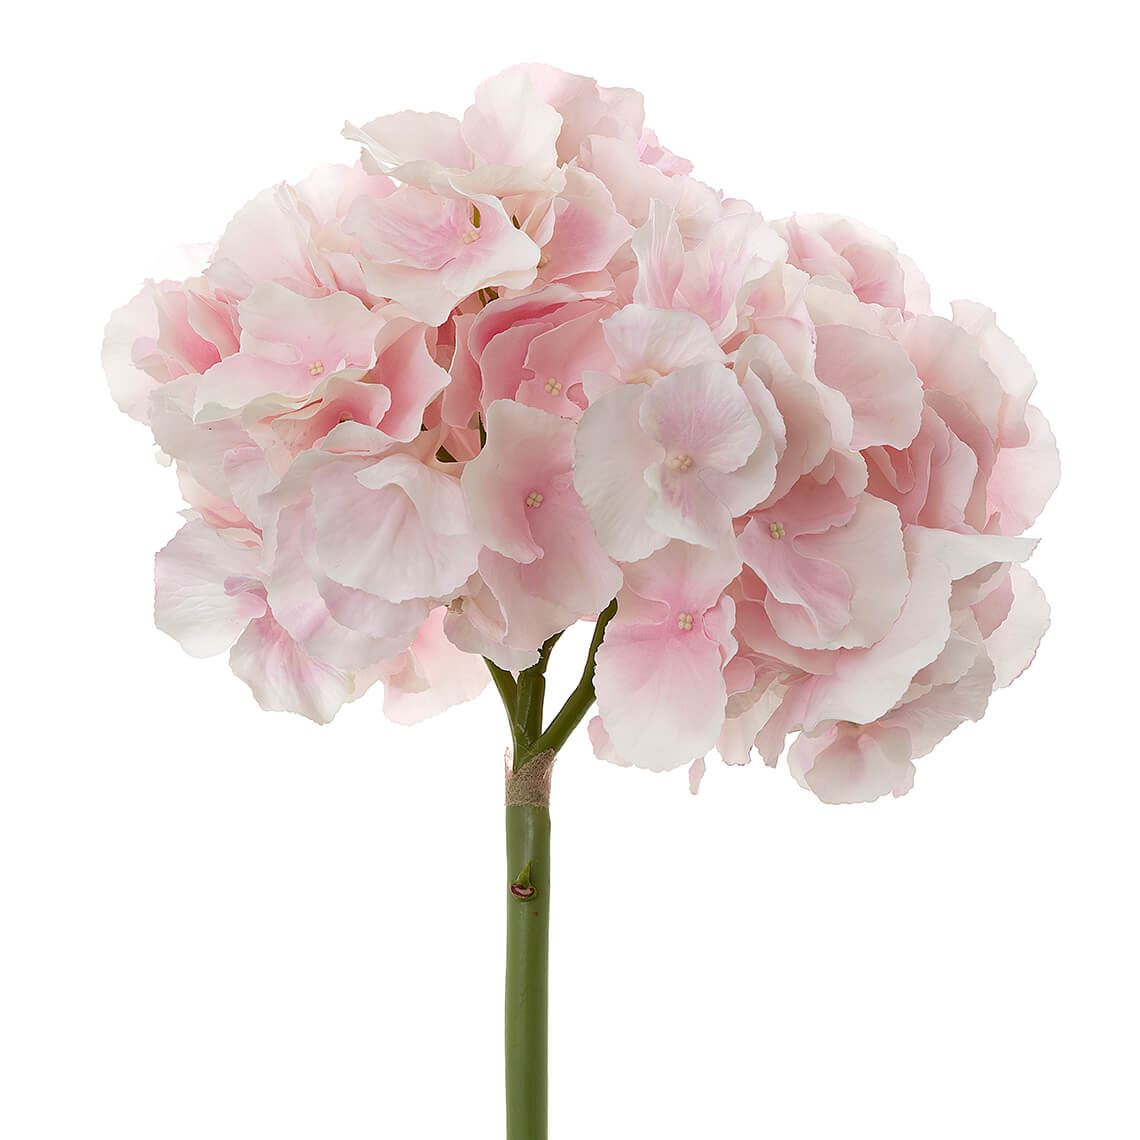 Flora Hydrangea Stem Artificial Flower Size W 22cm x D 22cm x H 54cm in Light Pink Plastic/Polyester Freedom by Freedom, a Plants for sale on Style Sourcebook